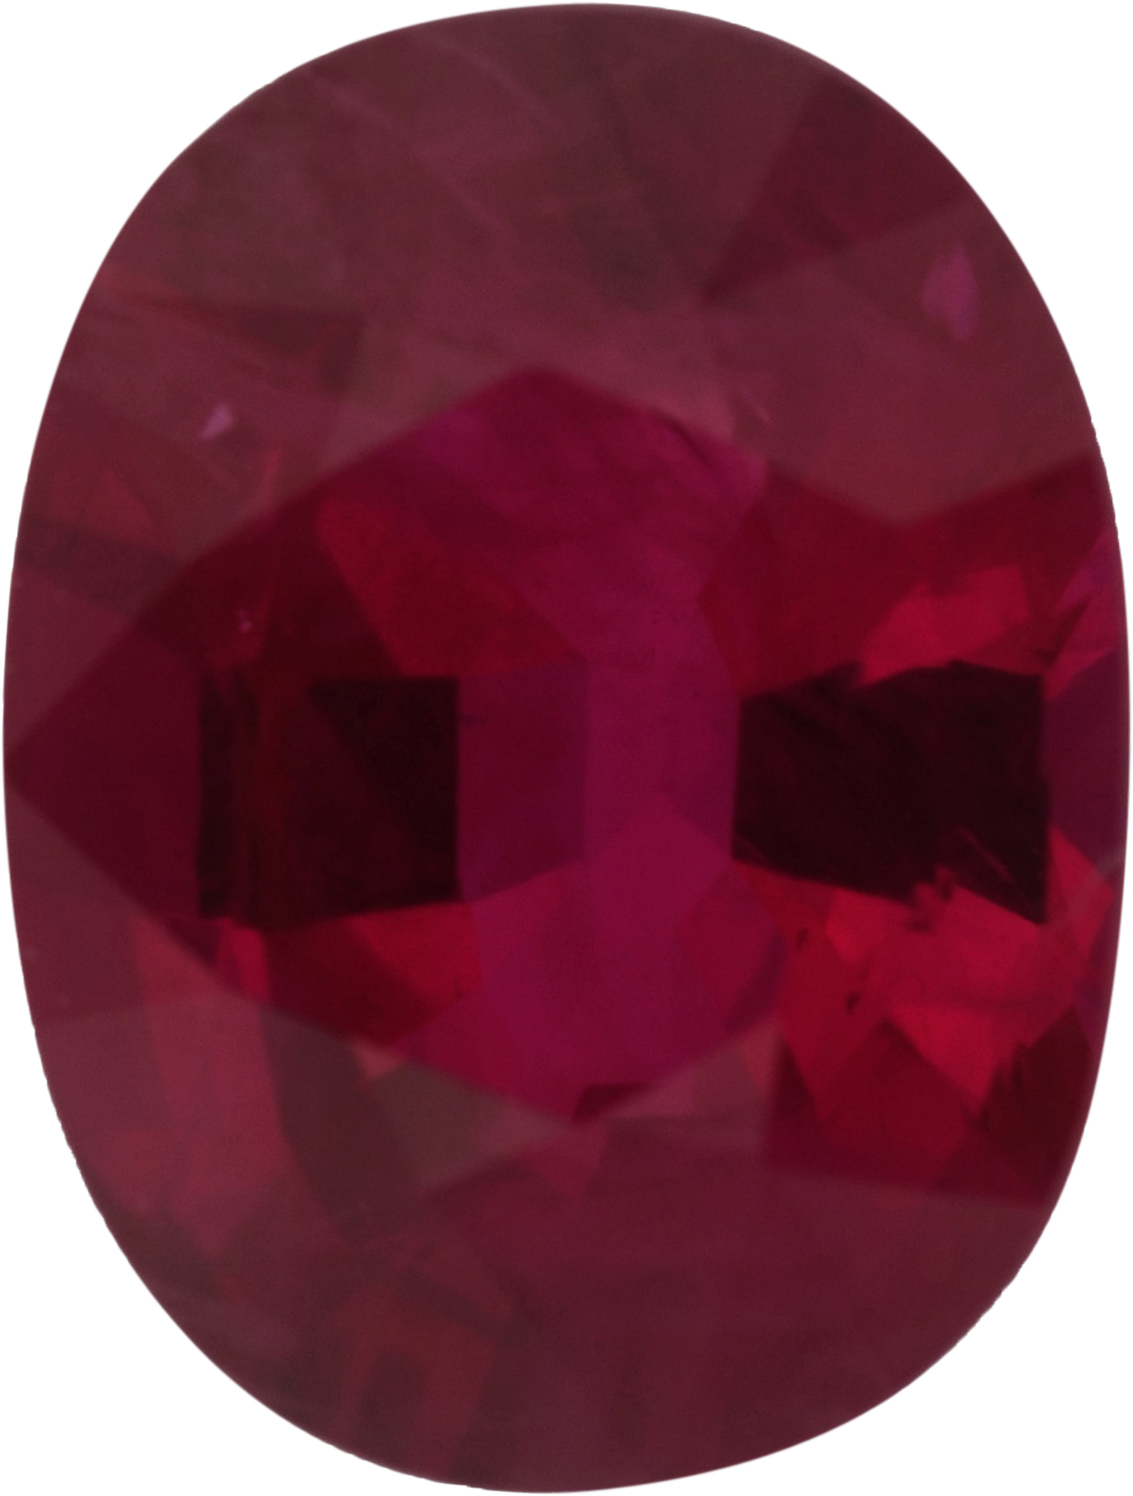 1.1 carats Ruby Loose Gemstone in Antique Cushion Cut, Strong Red, 7.27 x 5.54 mm